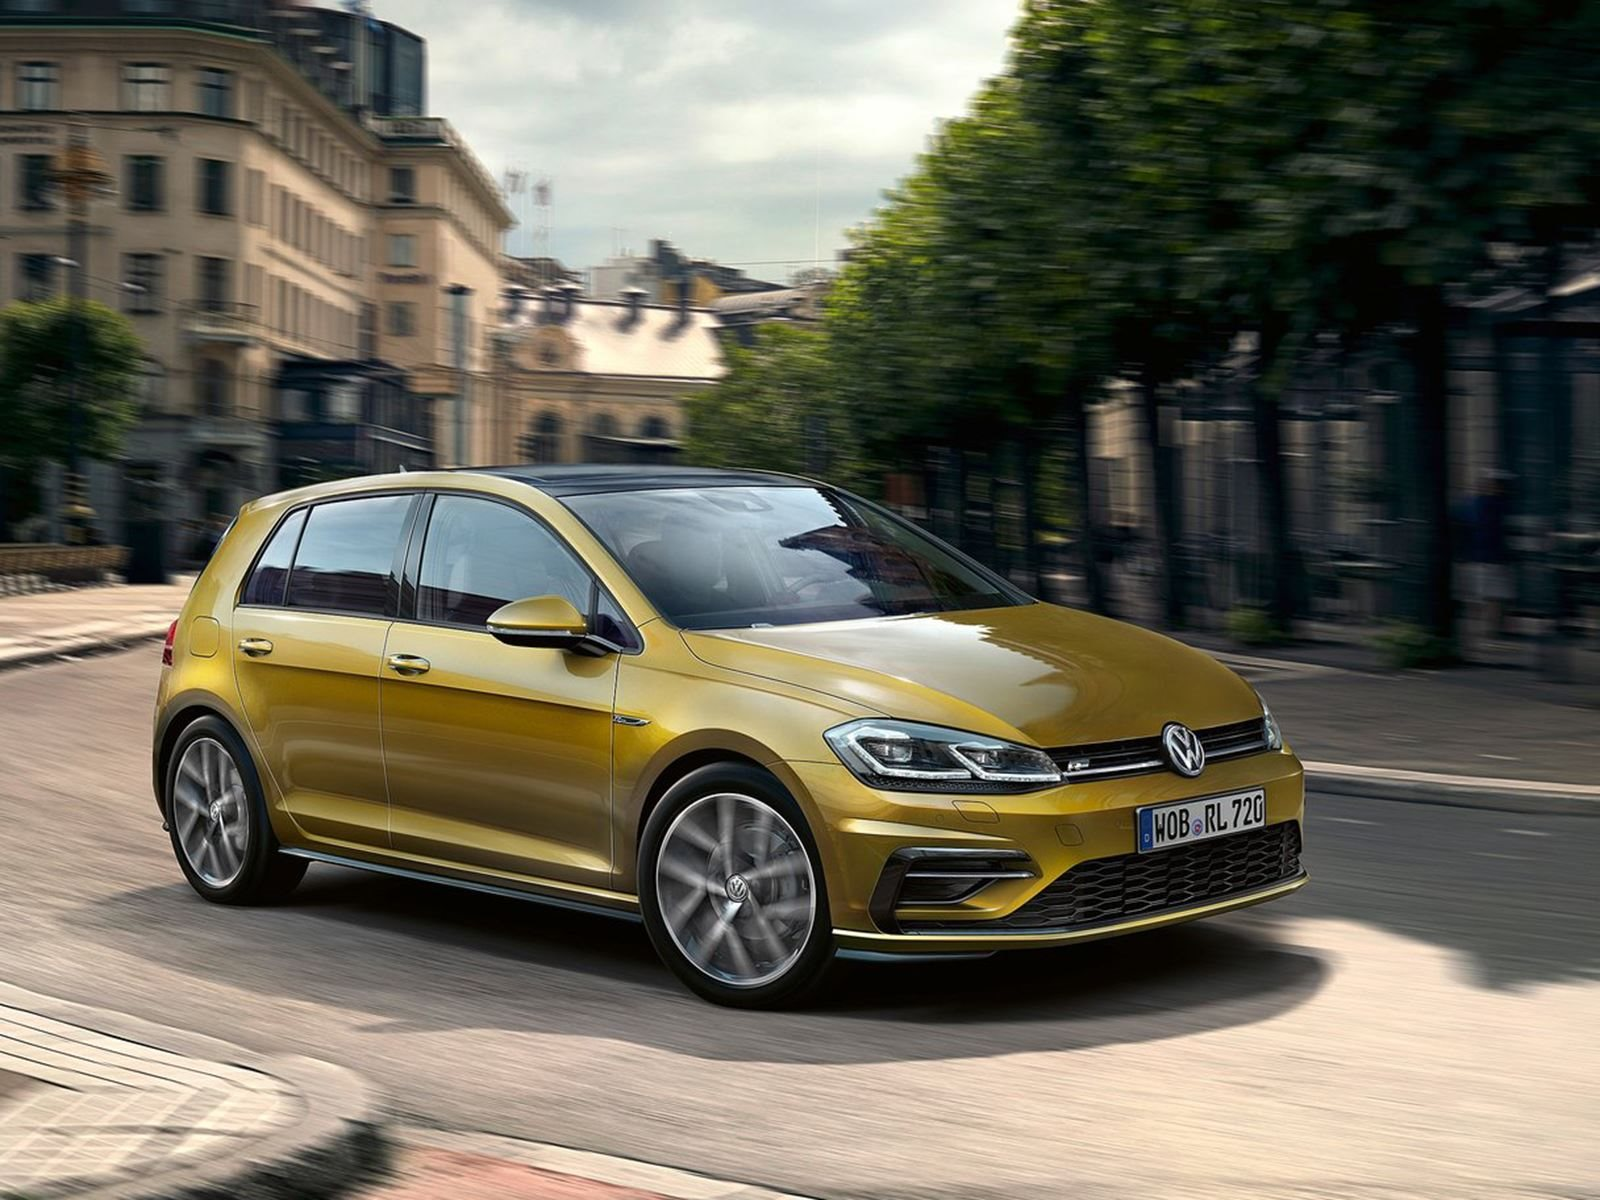 2019 Volkswagen Golf >> The 2019 Volkswagen Golf Will Gain Power And A New Aerodynamic Body